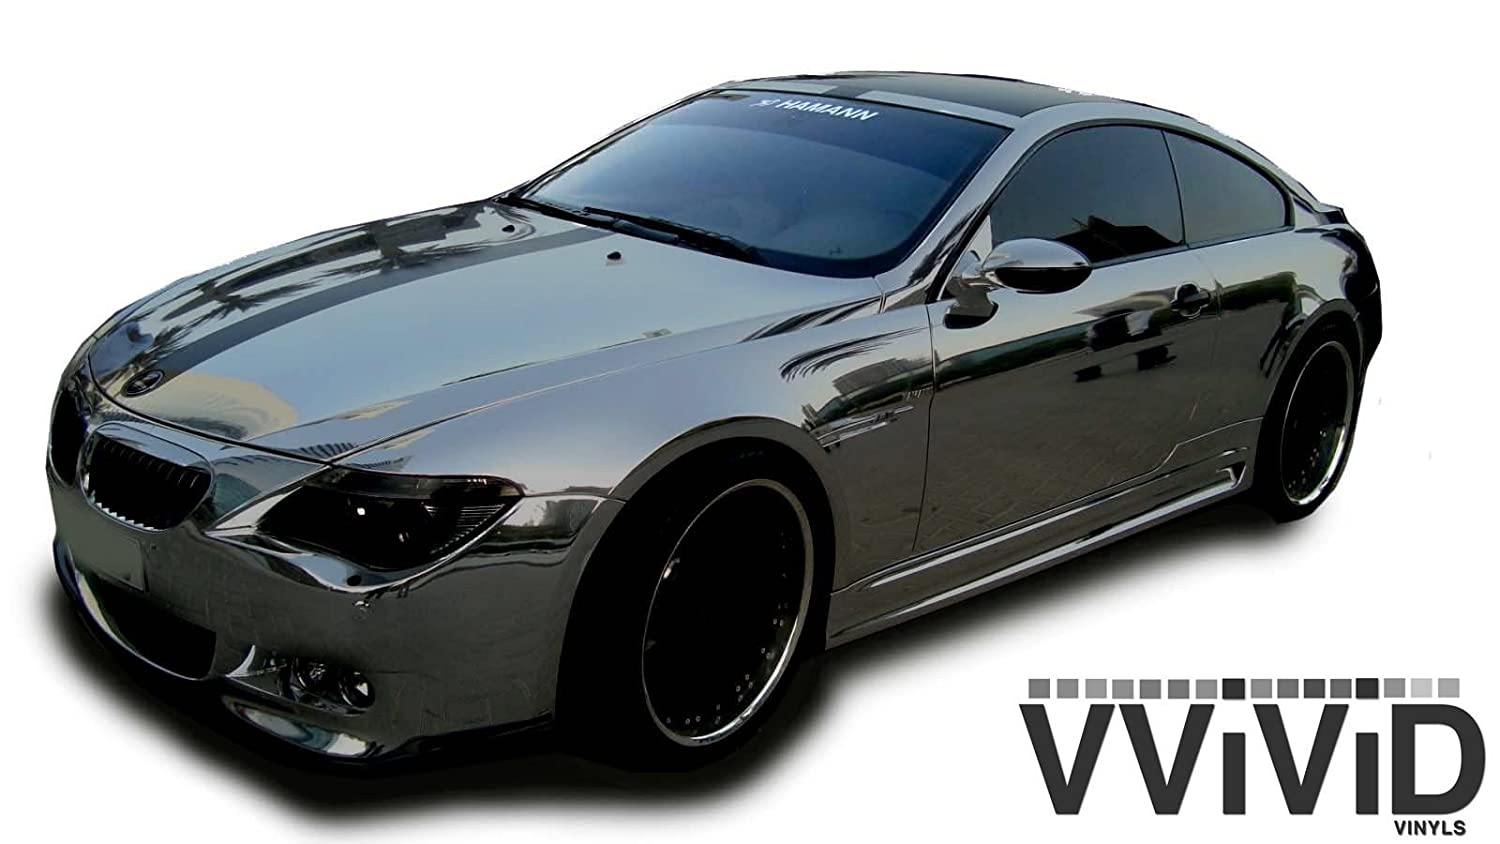 Amazon com vvivid standard gloss chrome black vinyl wrap adhesive film 6 inches x 60 inches roll air release diy decal sheet automotive